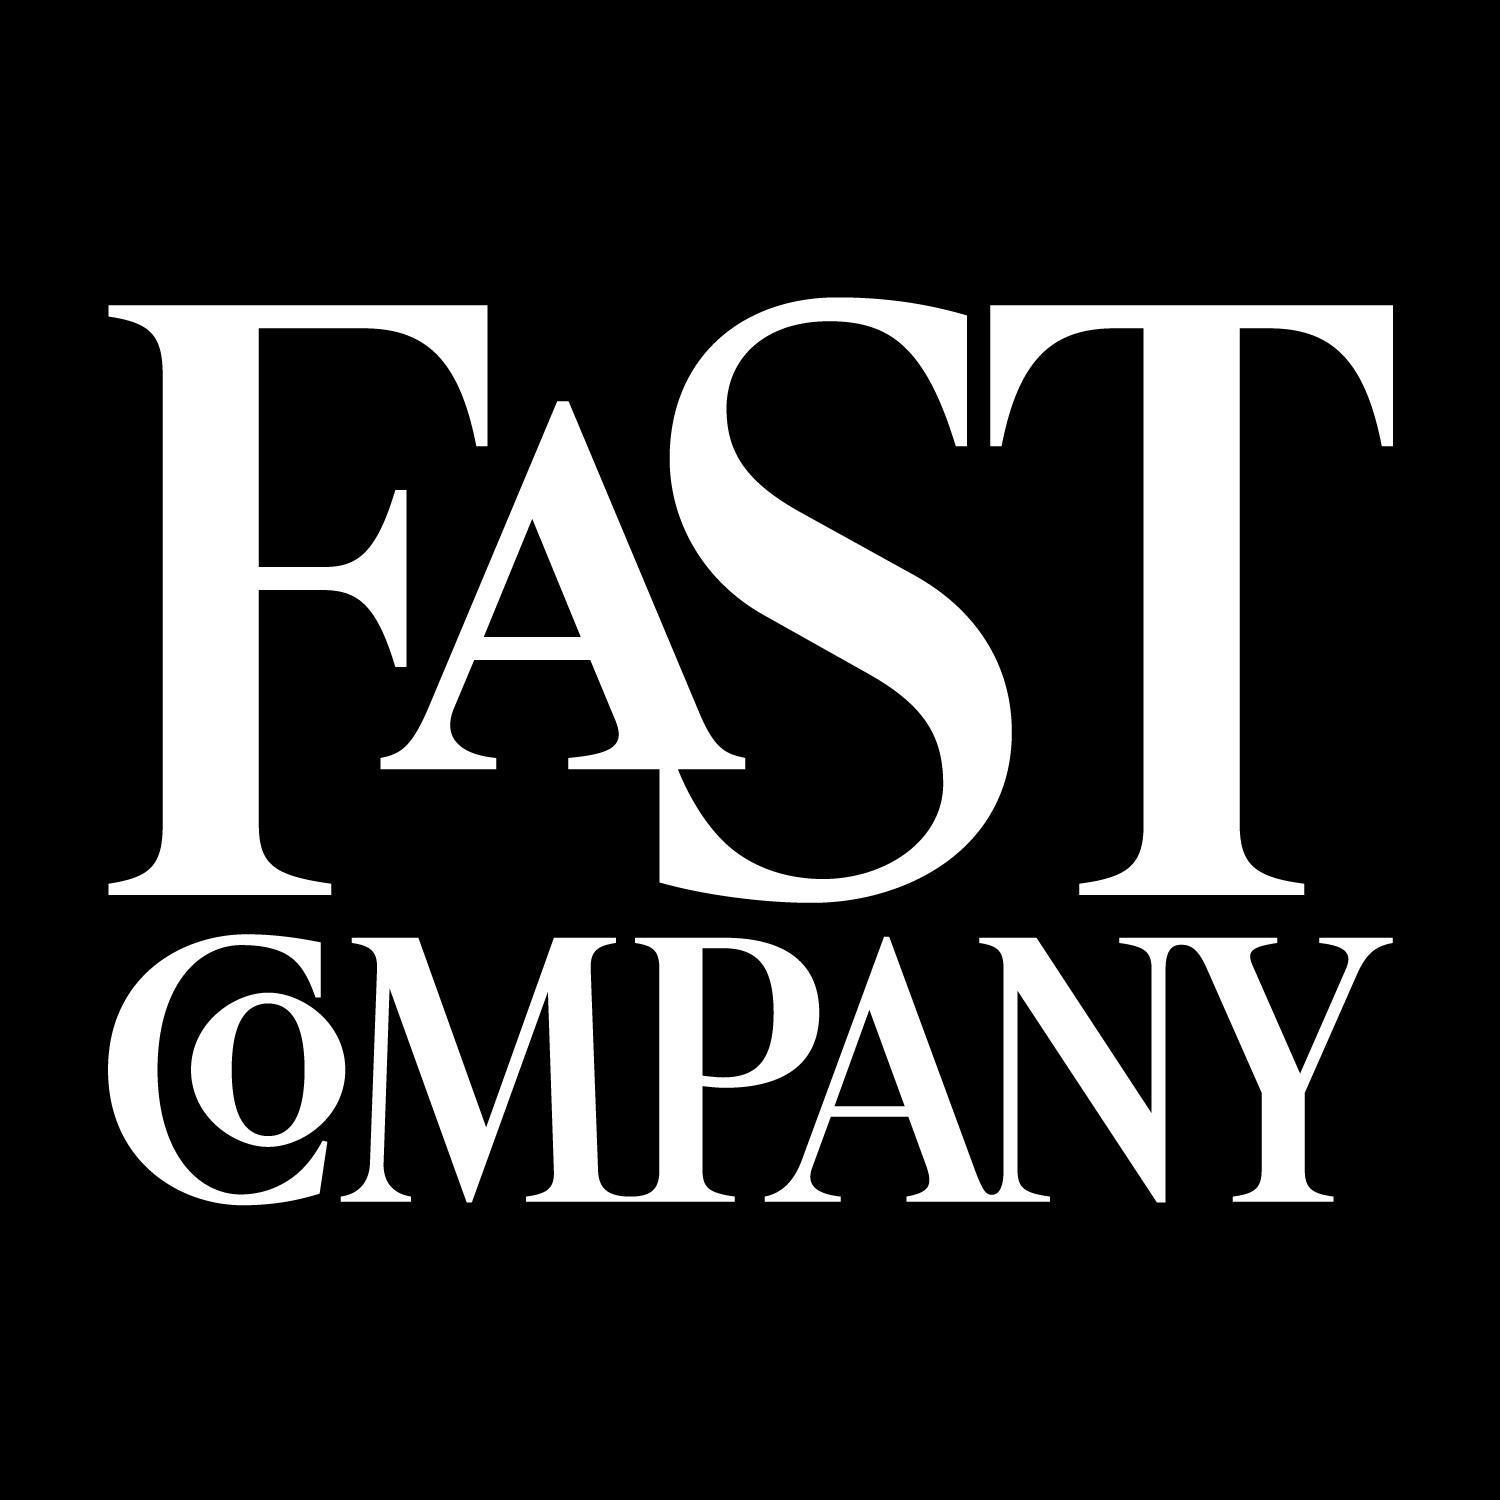 FASTCOMPANY.jpeg